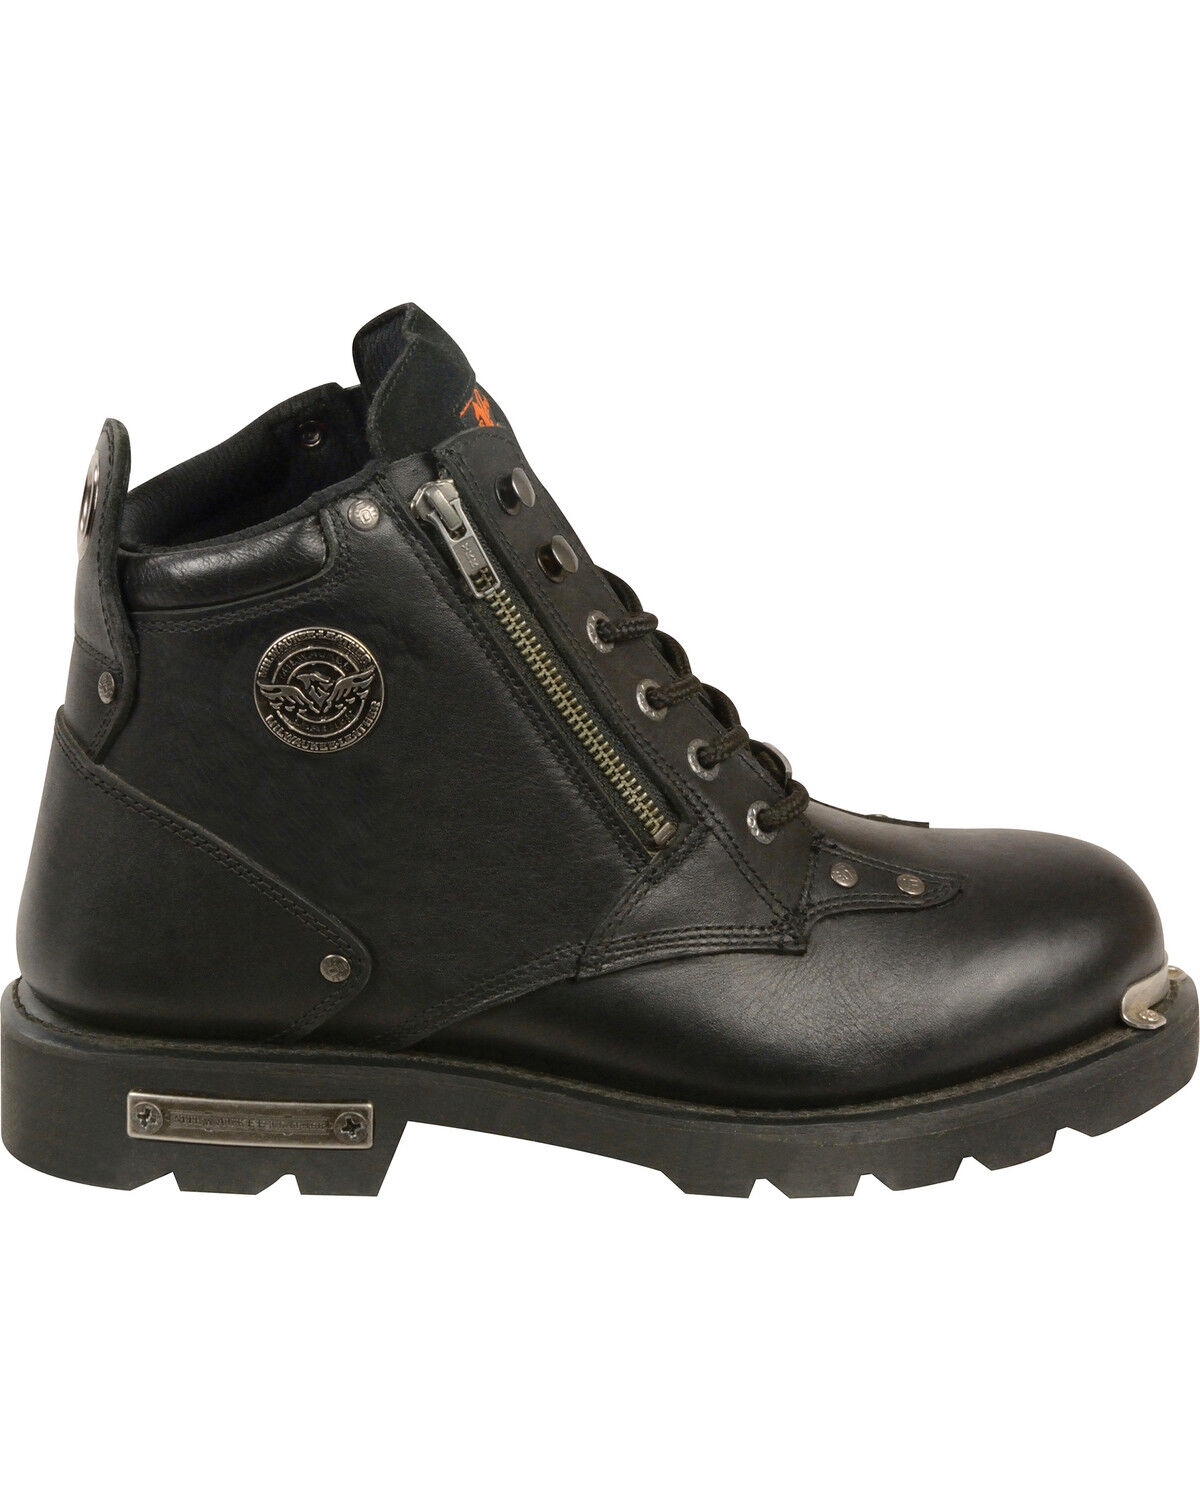 Mens Black Leather Lace Boots w Double Zippers